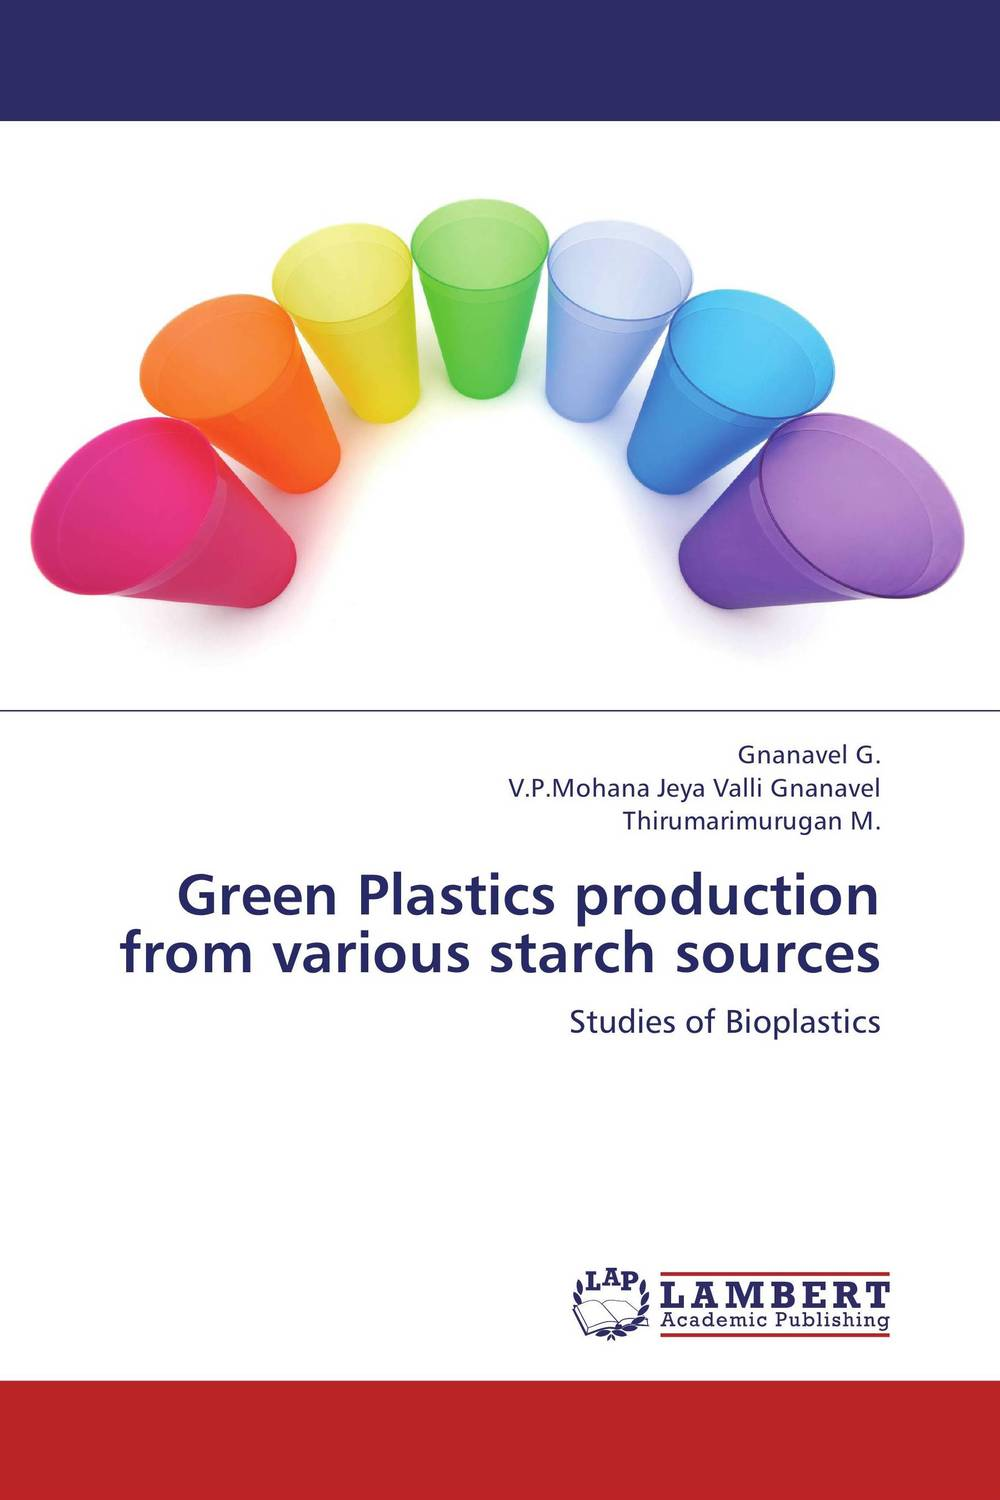 Green Plastics production from various starch sources caleb williams or things as they are